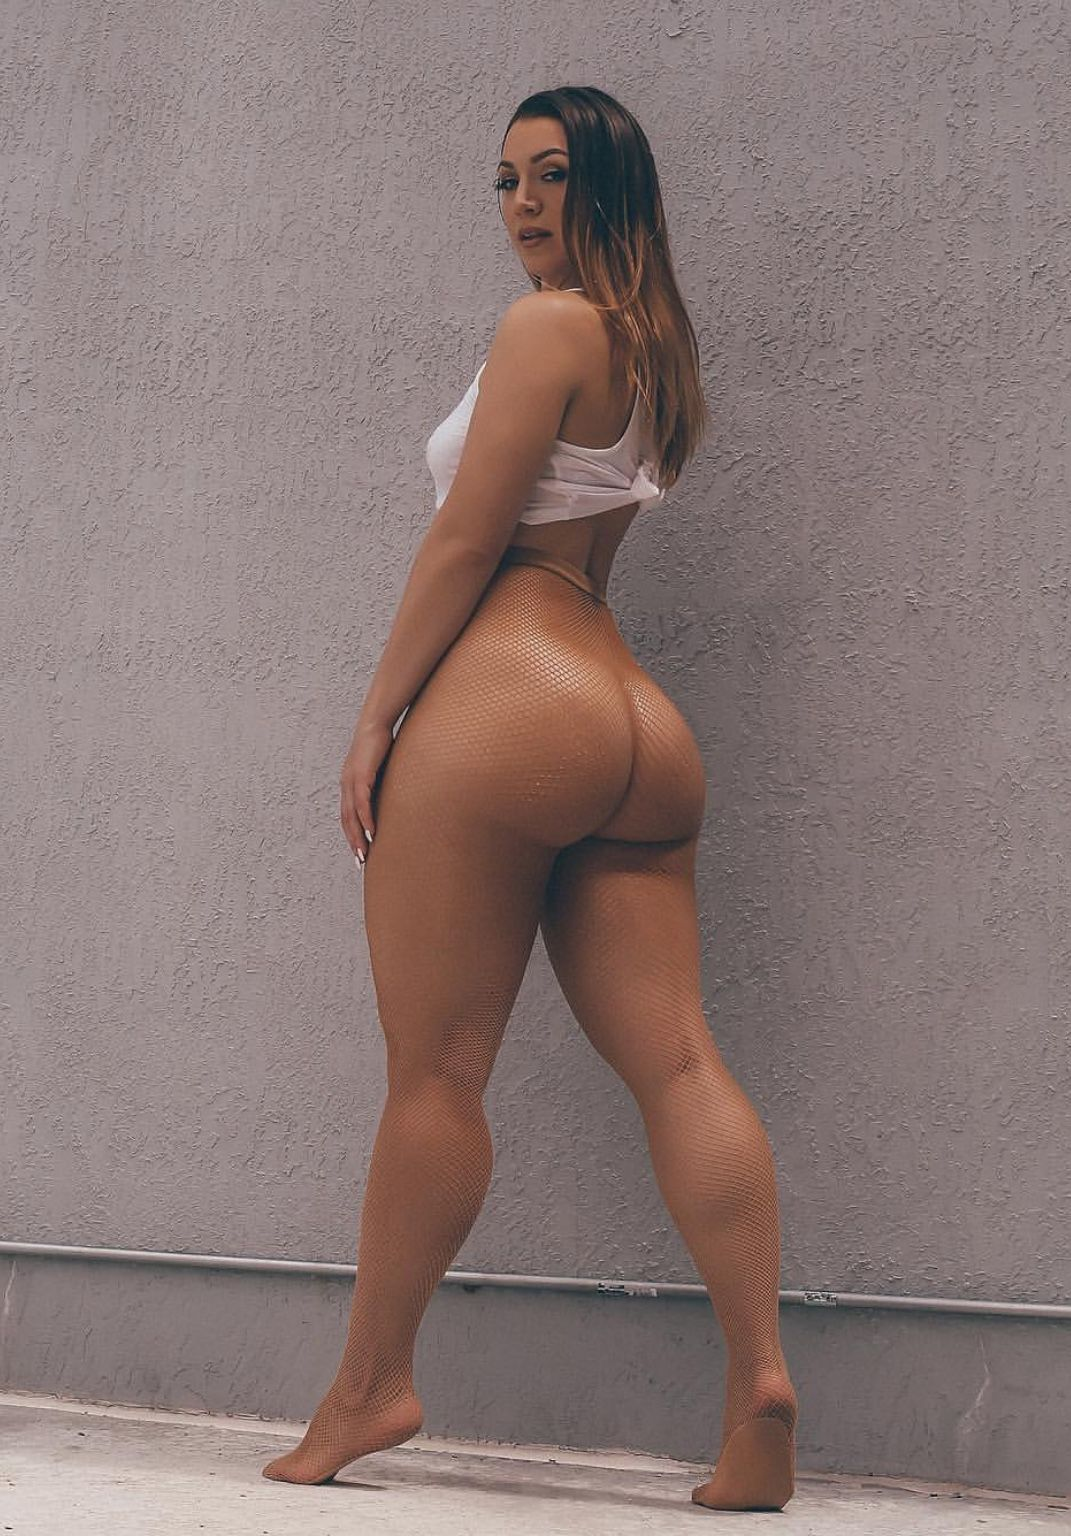 nice ass beautiful body | beautiful body nice ass | pinterest